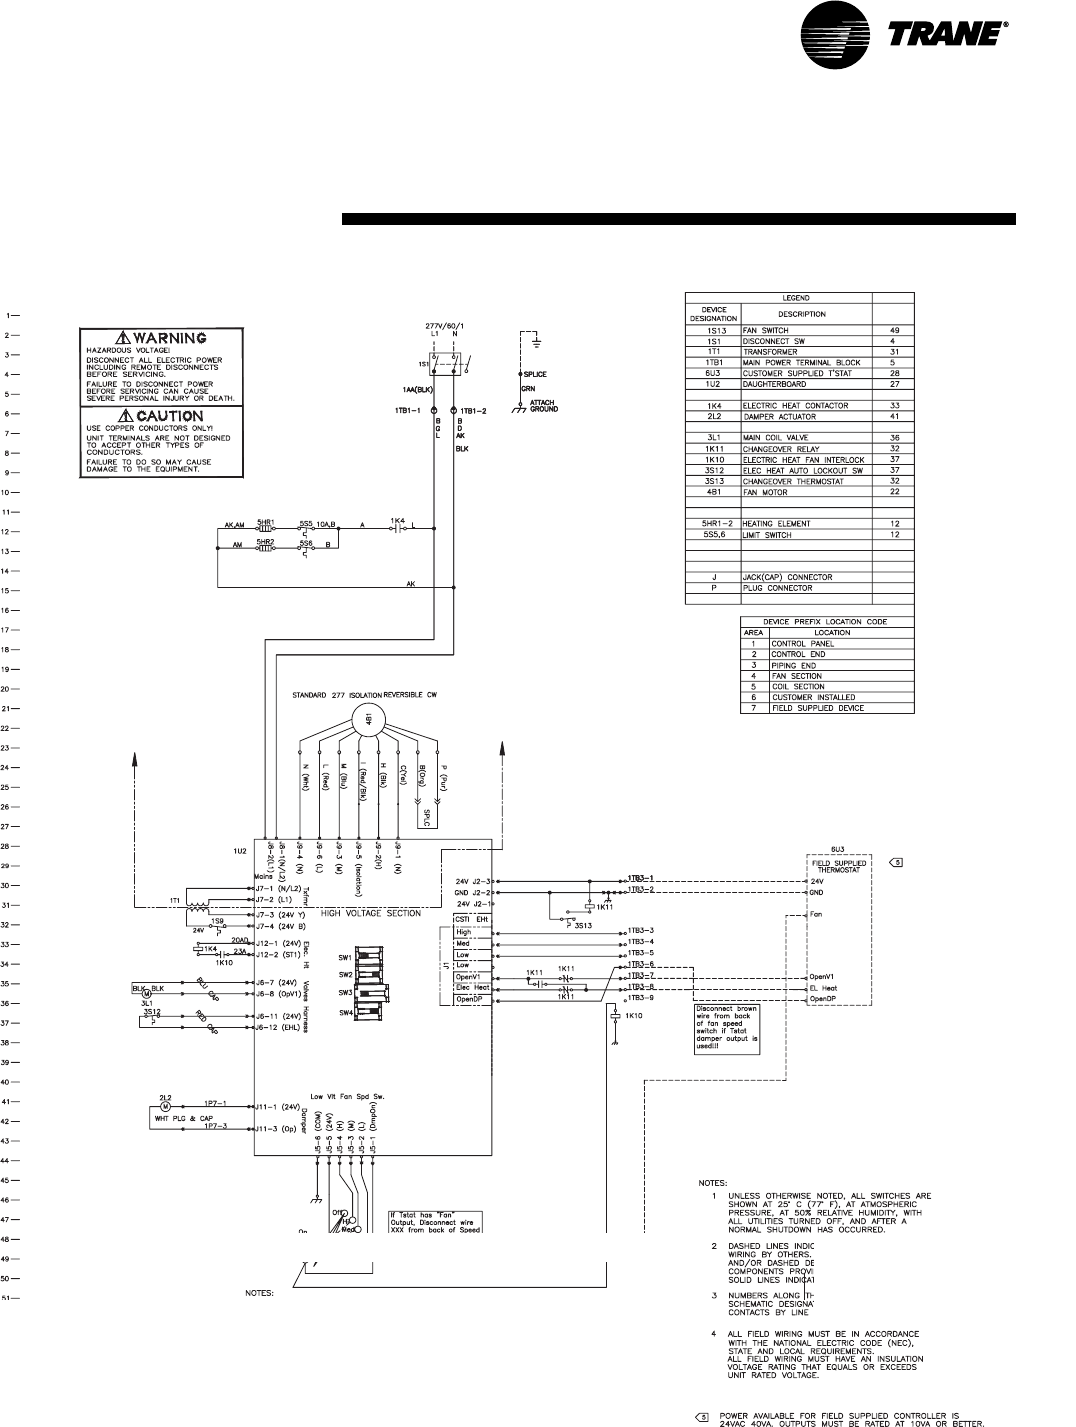 Trane Unitrane Fan Coil Force Flo Air Conditioners Unt Svx07a En Unit Wiring Diagram Search